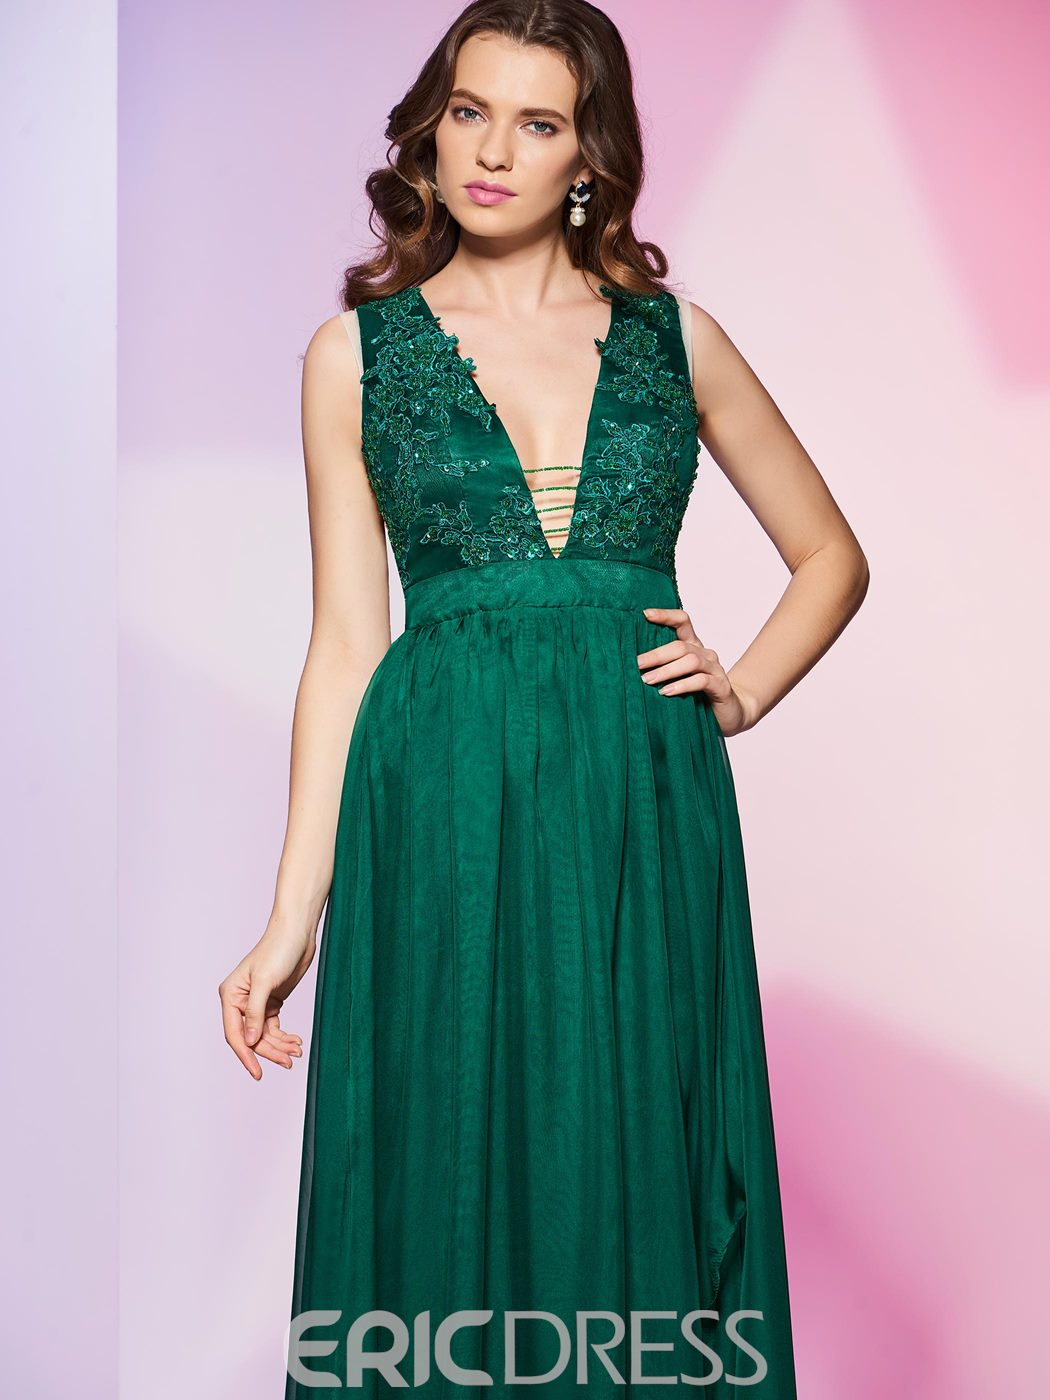 Ericdress Sexy Deep Neck Lace Applique A Line Long Prom Dress